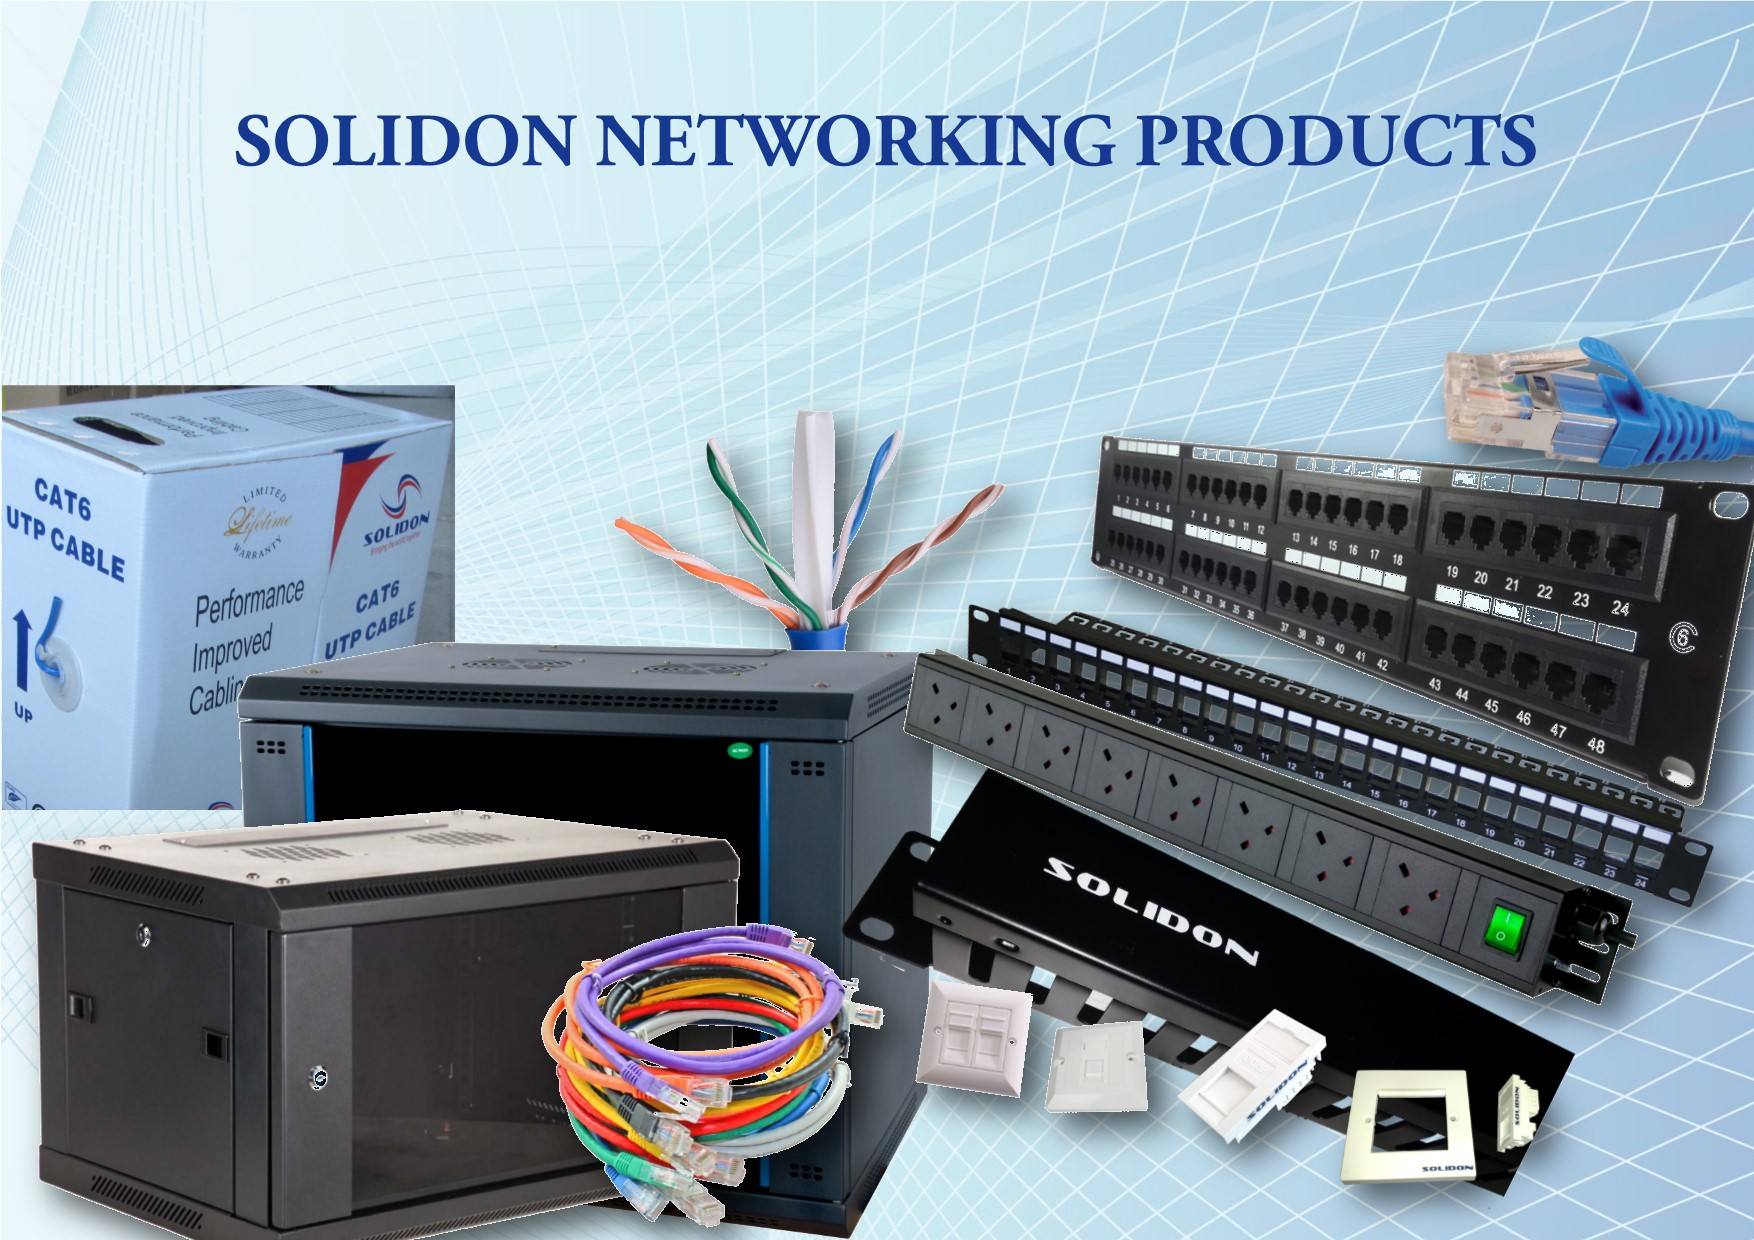 Authorized Distributor of Solidon